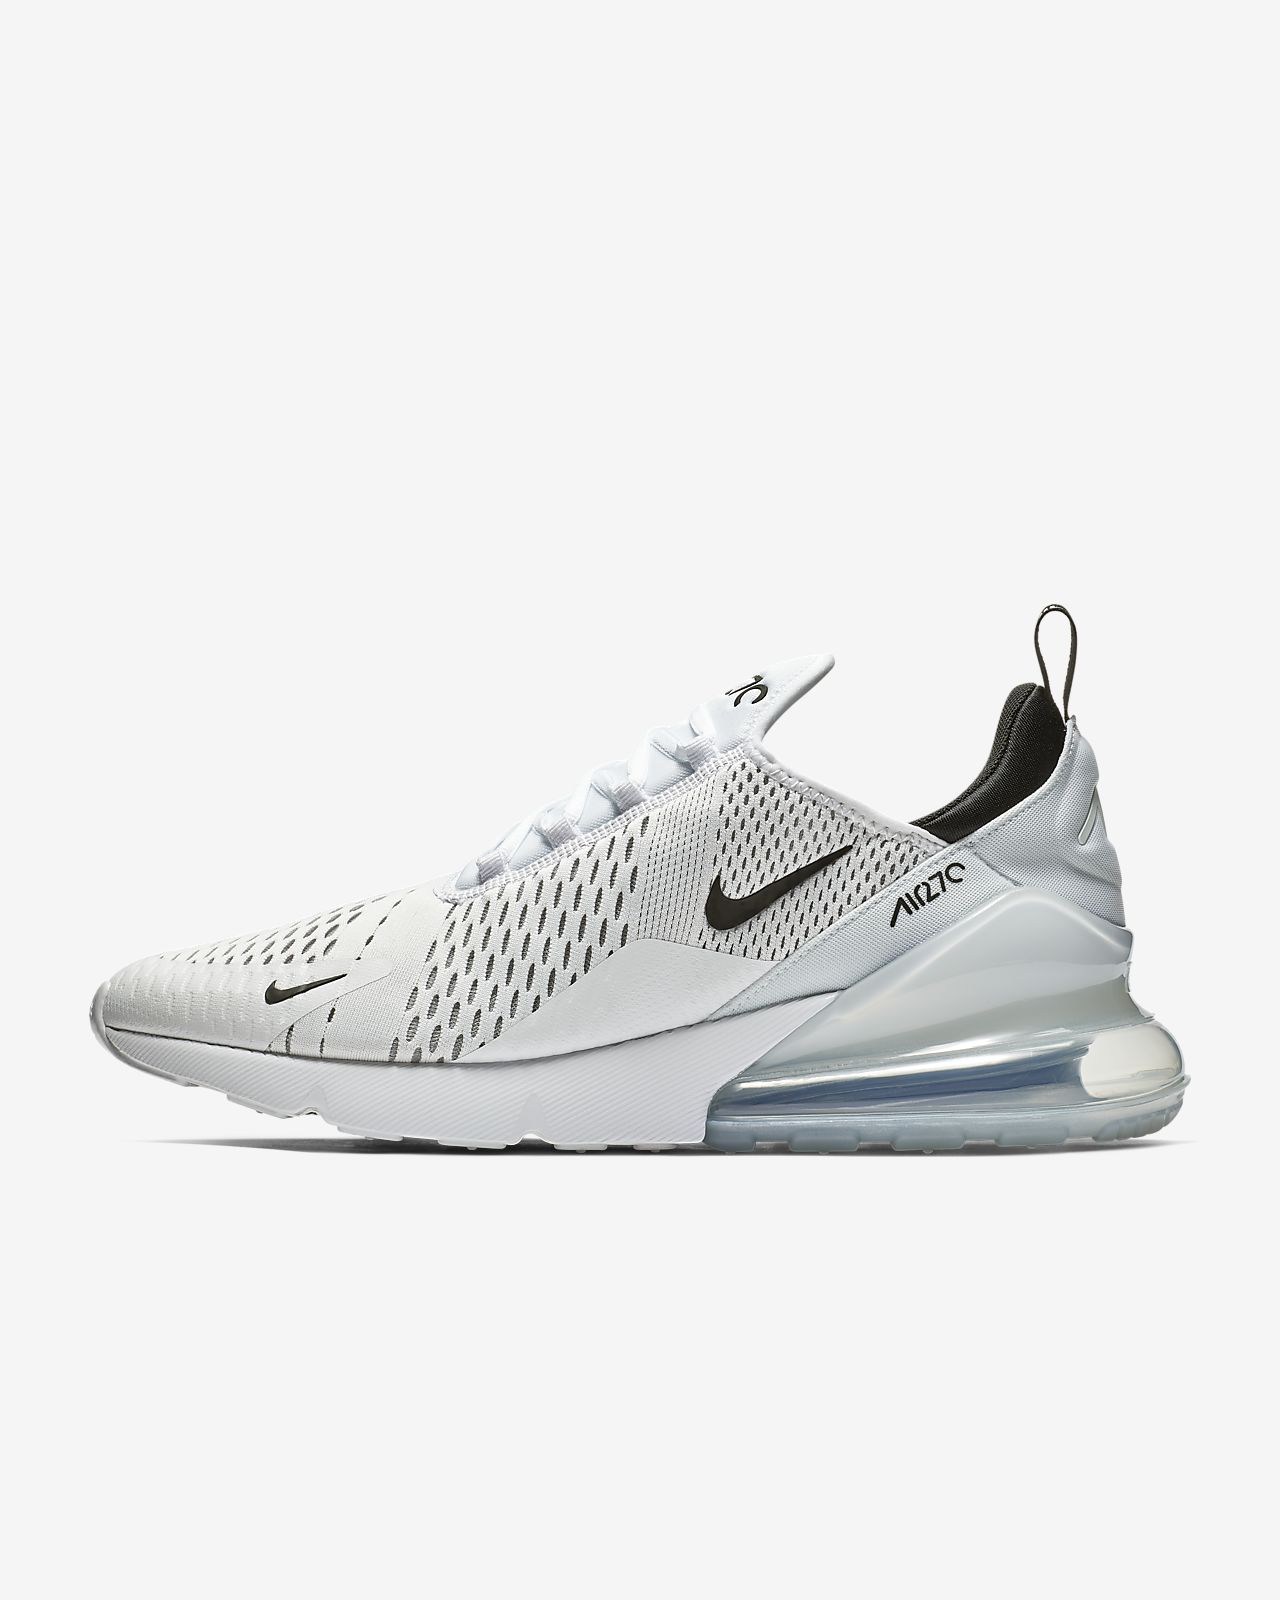 9ce66c2810751f Low Resolution Nike Air Max 270 Men's Shoe Nike Air Max 270 Men's Shoe